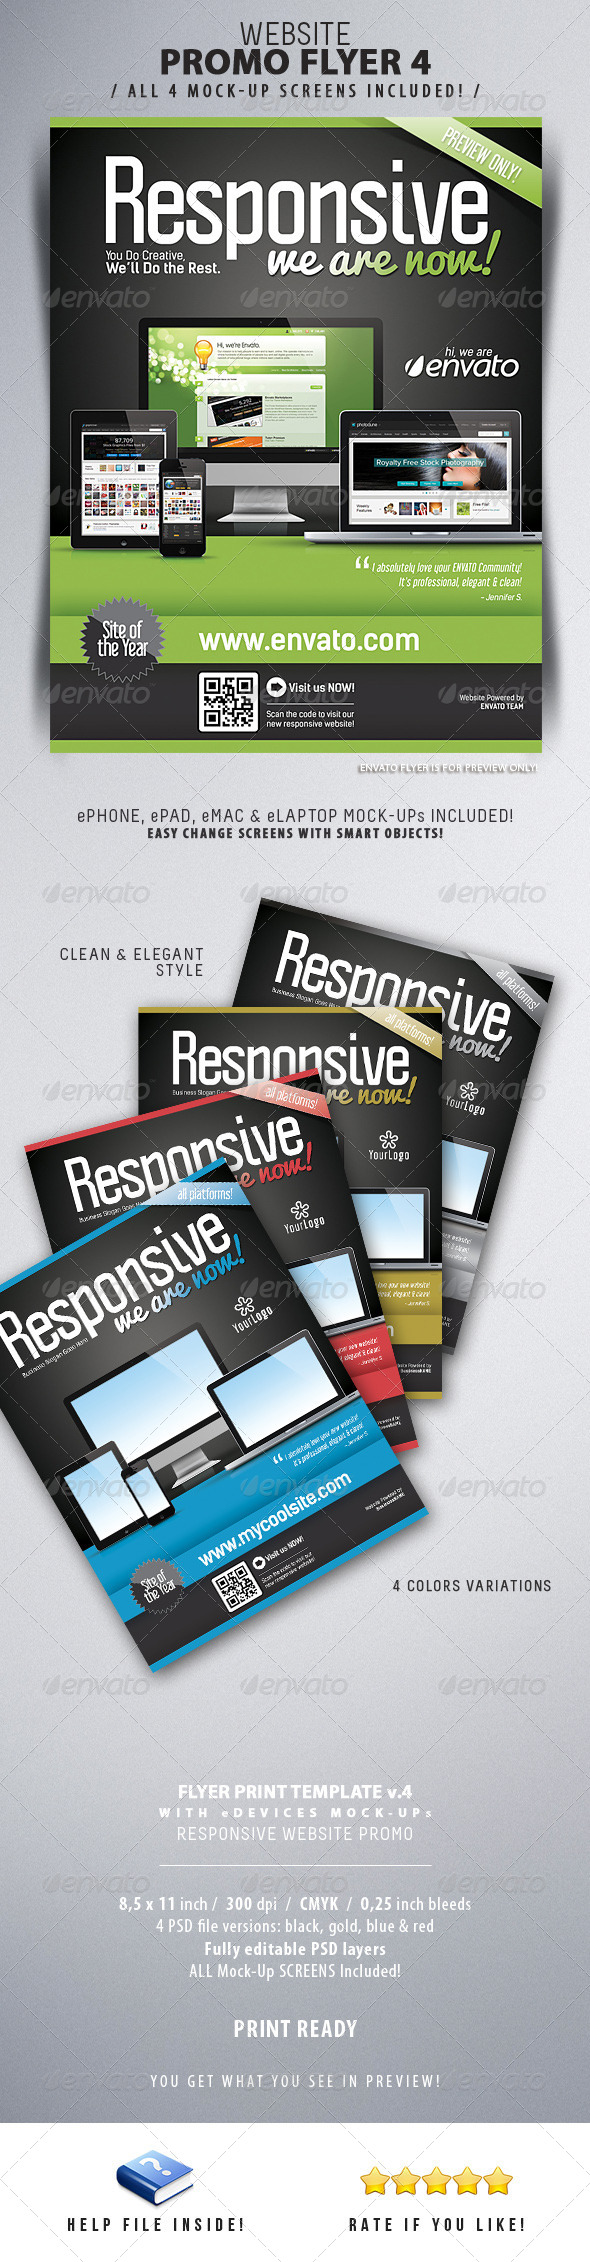 Website Responsive Flyers Template 4 - Commerce Flyers